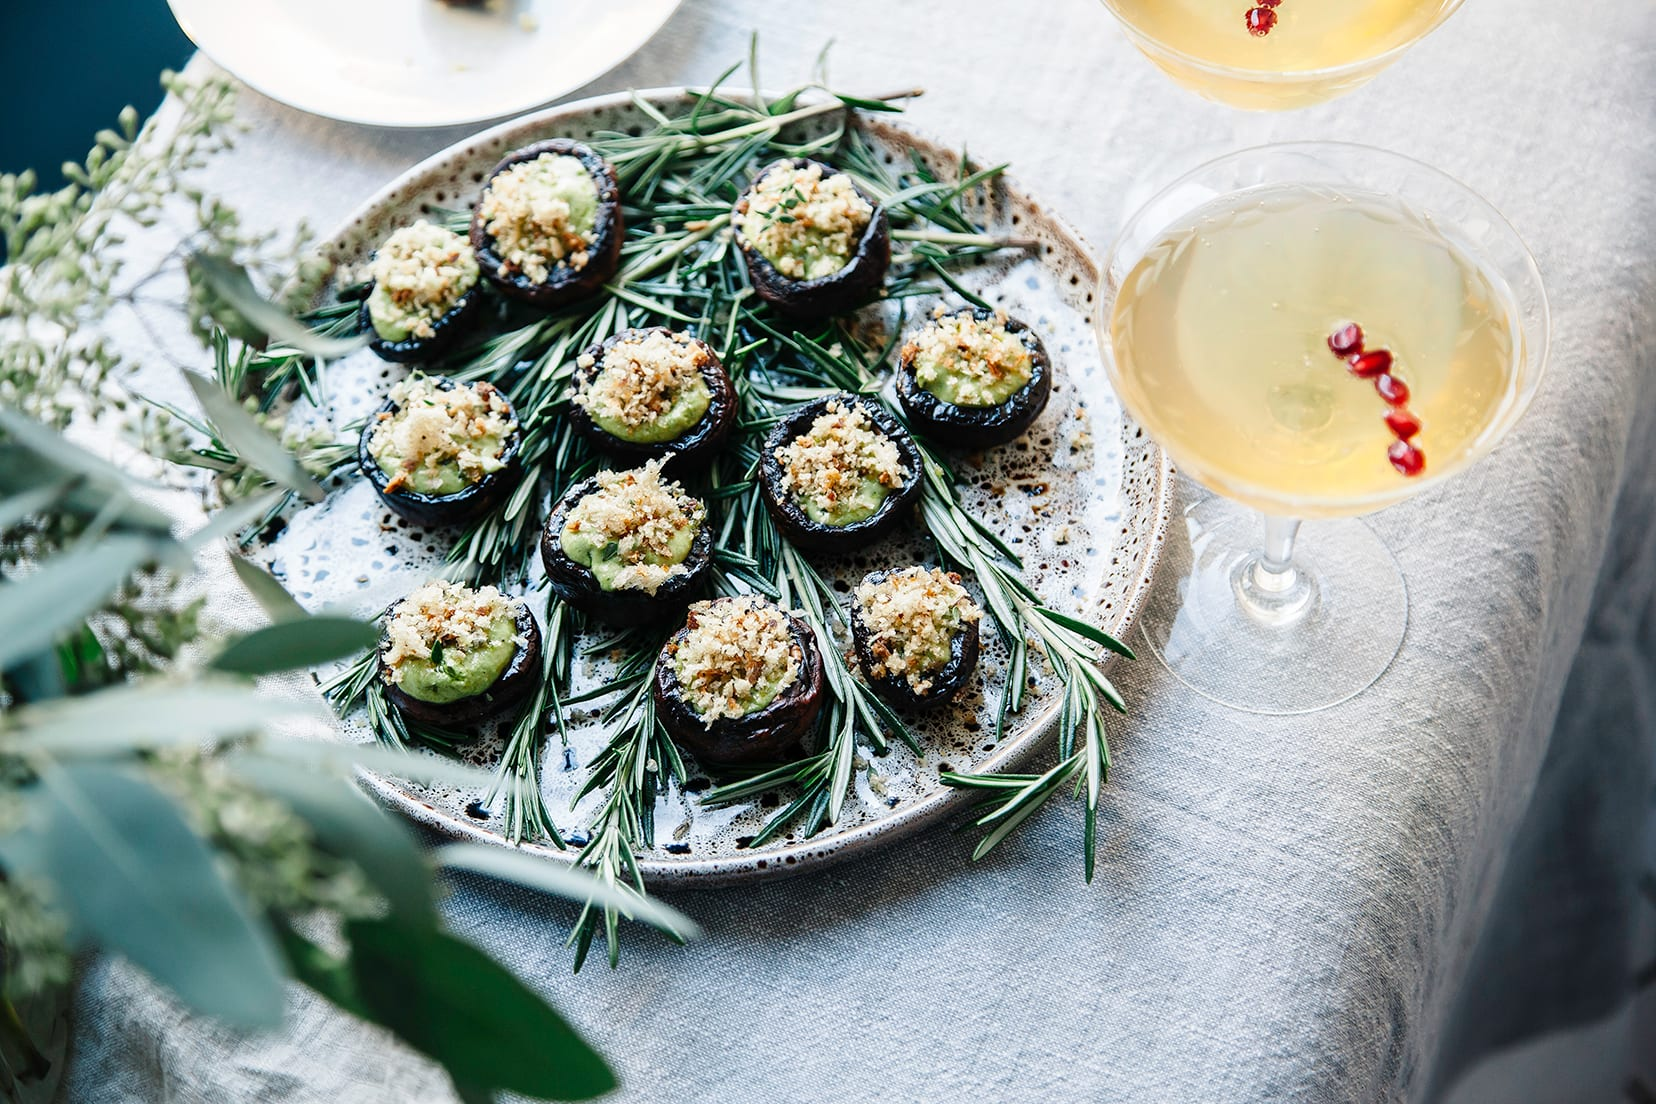 Image shows some stuffed mushrooms with a creamy green sauce and breadcrumbs.